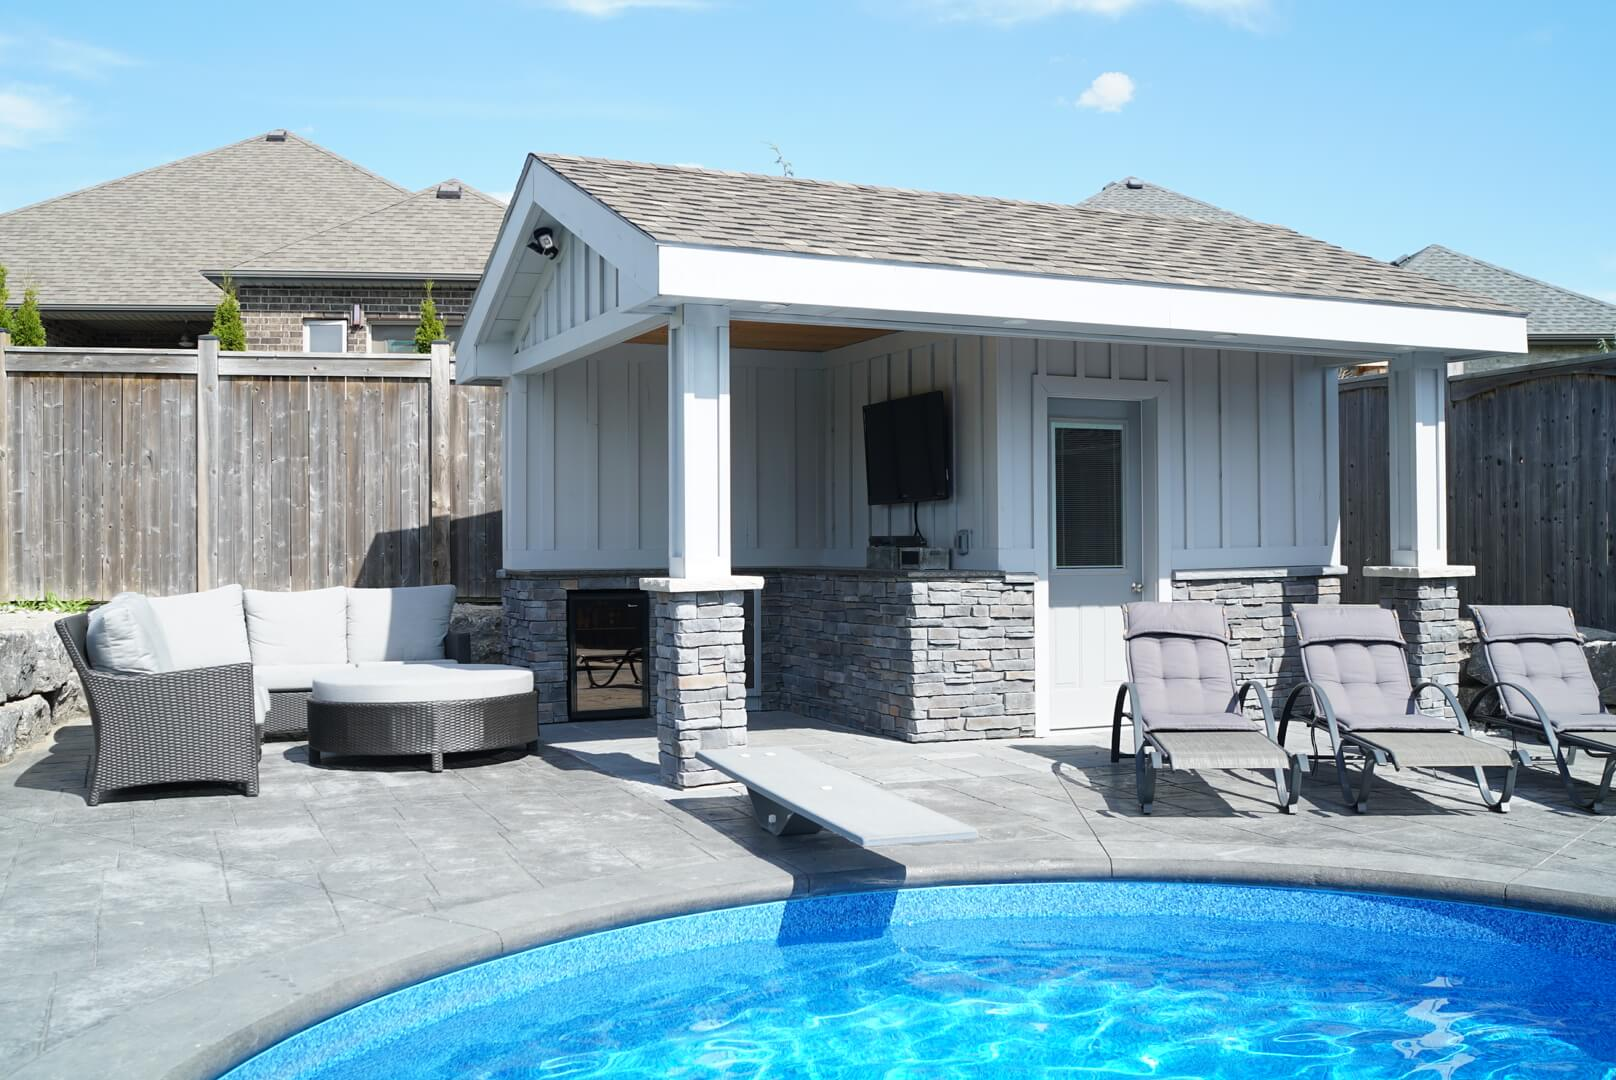 Small pool house behind pool of backyard